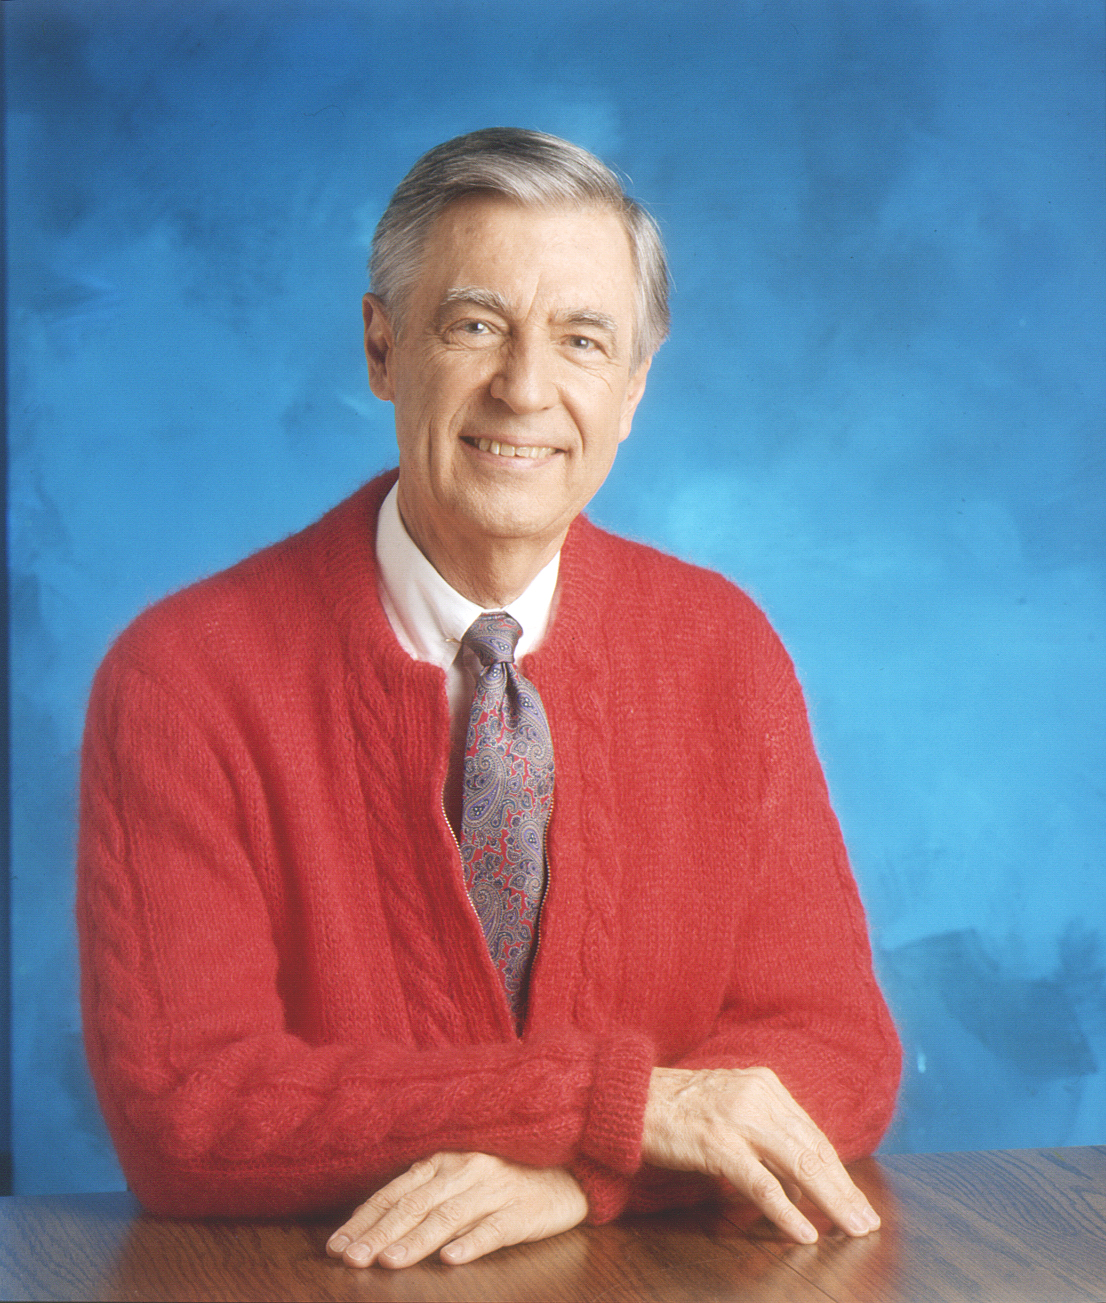 Fred Rogers net worth